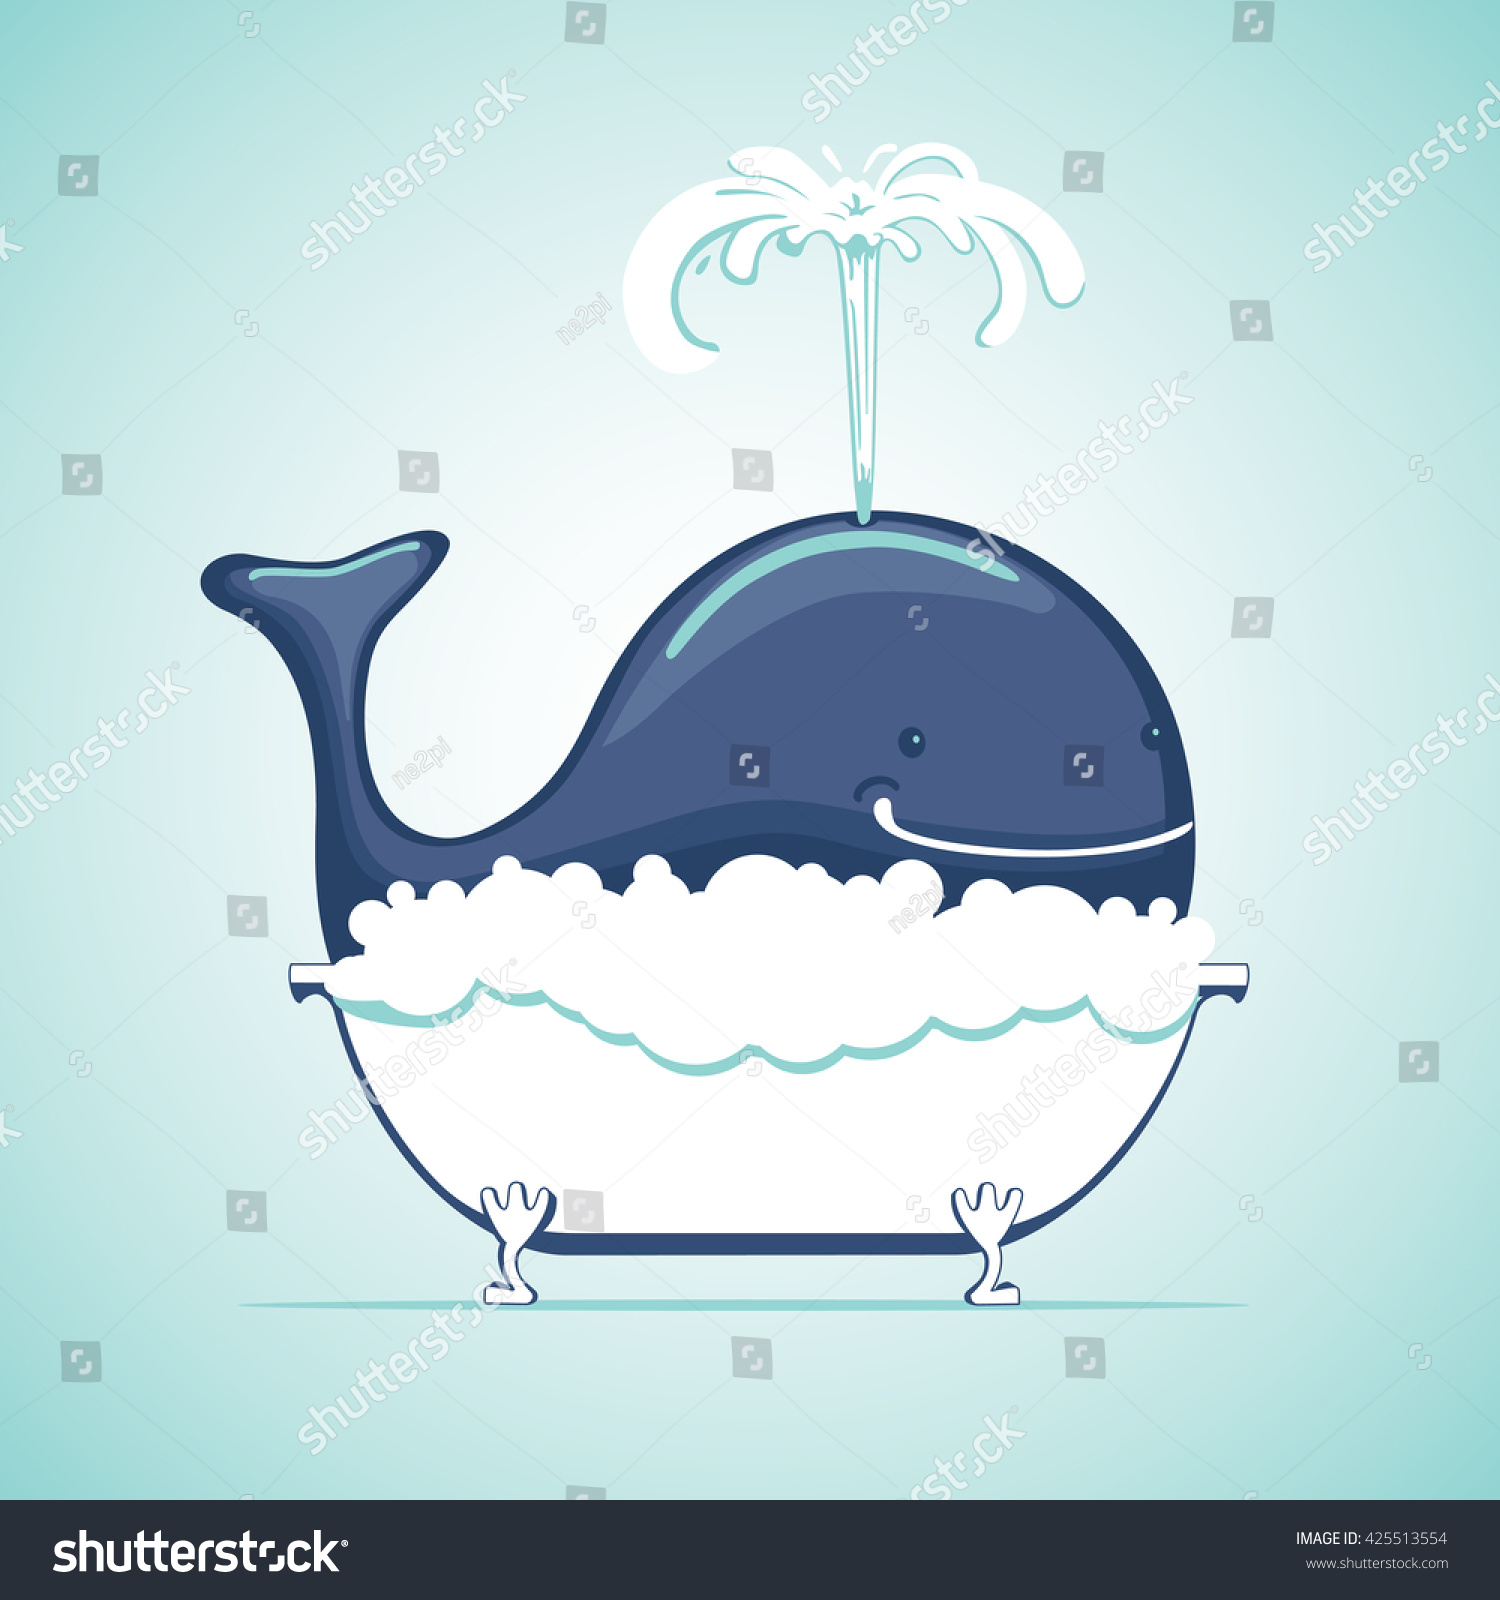 Cute whale in water cartoon isolated illustration stock photography - Funny Whale Take A Bath With Soapsuds Cartoon Animal